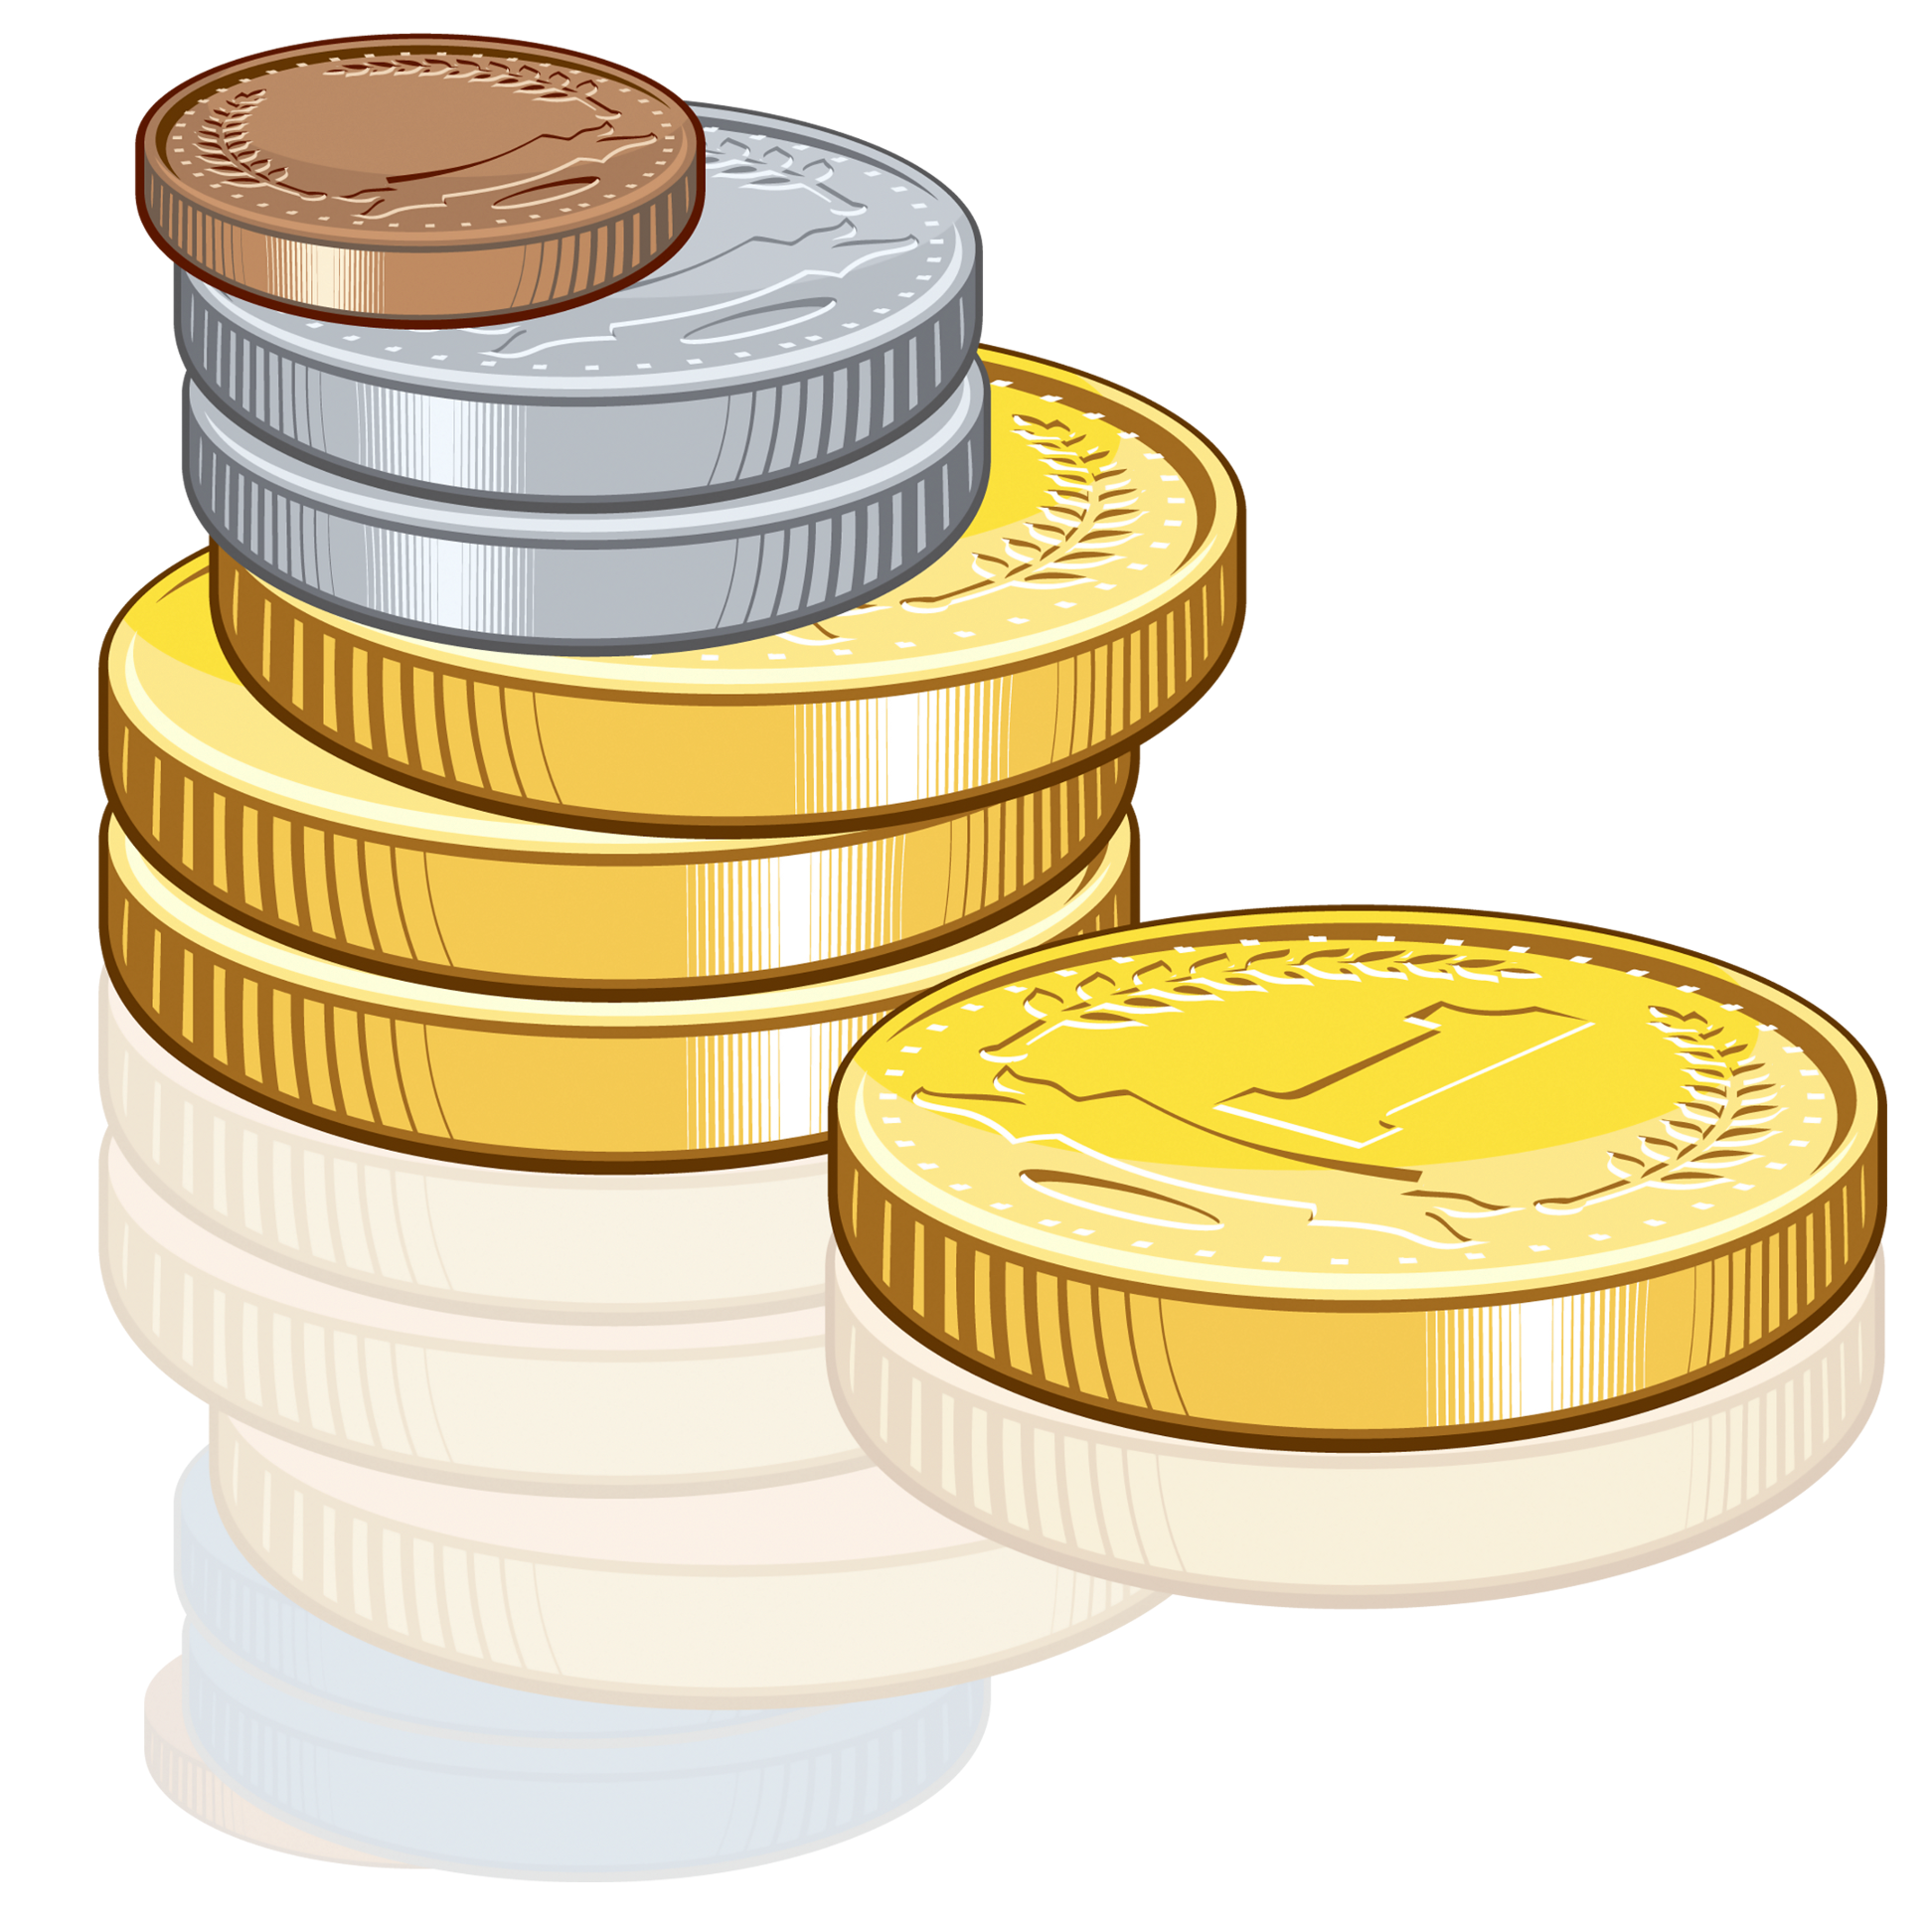 Free Coin Cliparts, Download Free Clip Art, Free Clip Art on.